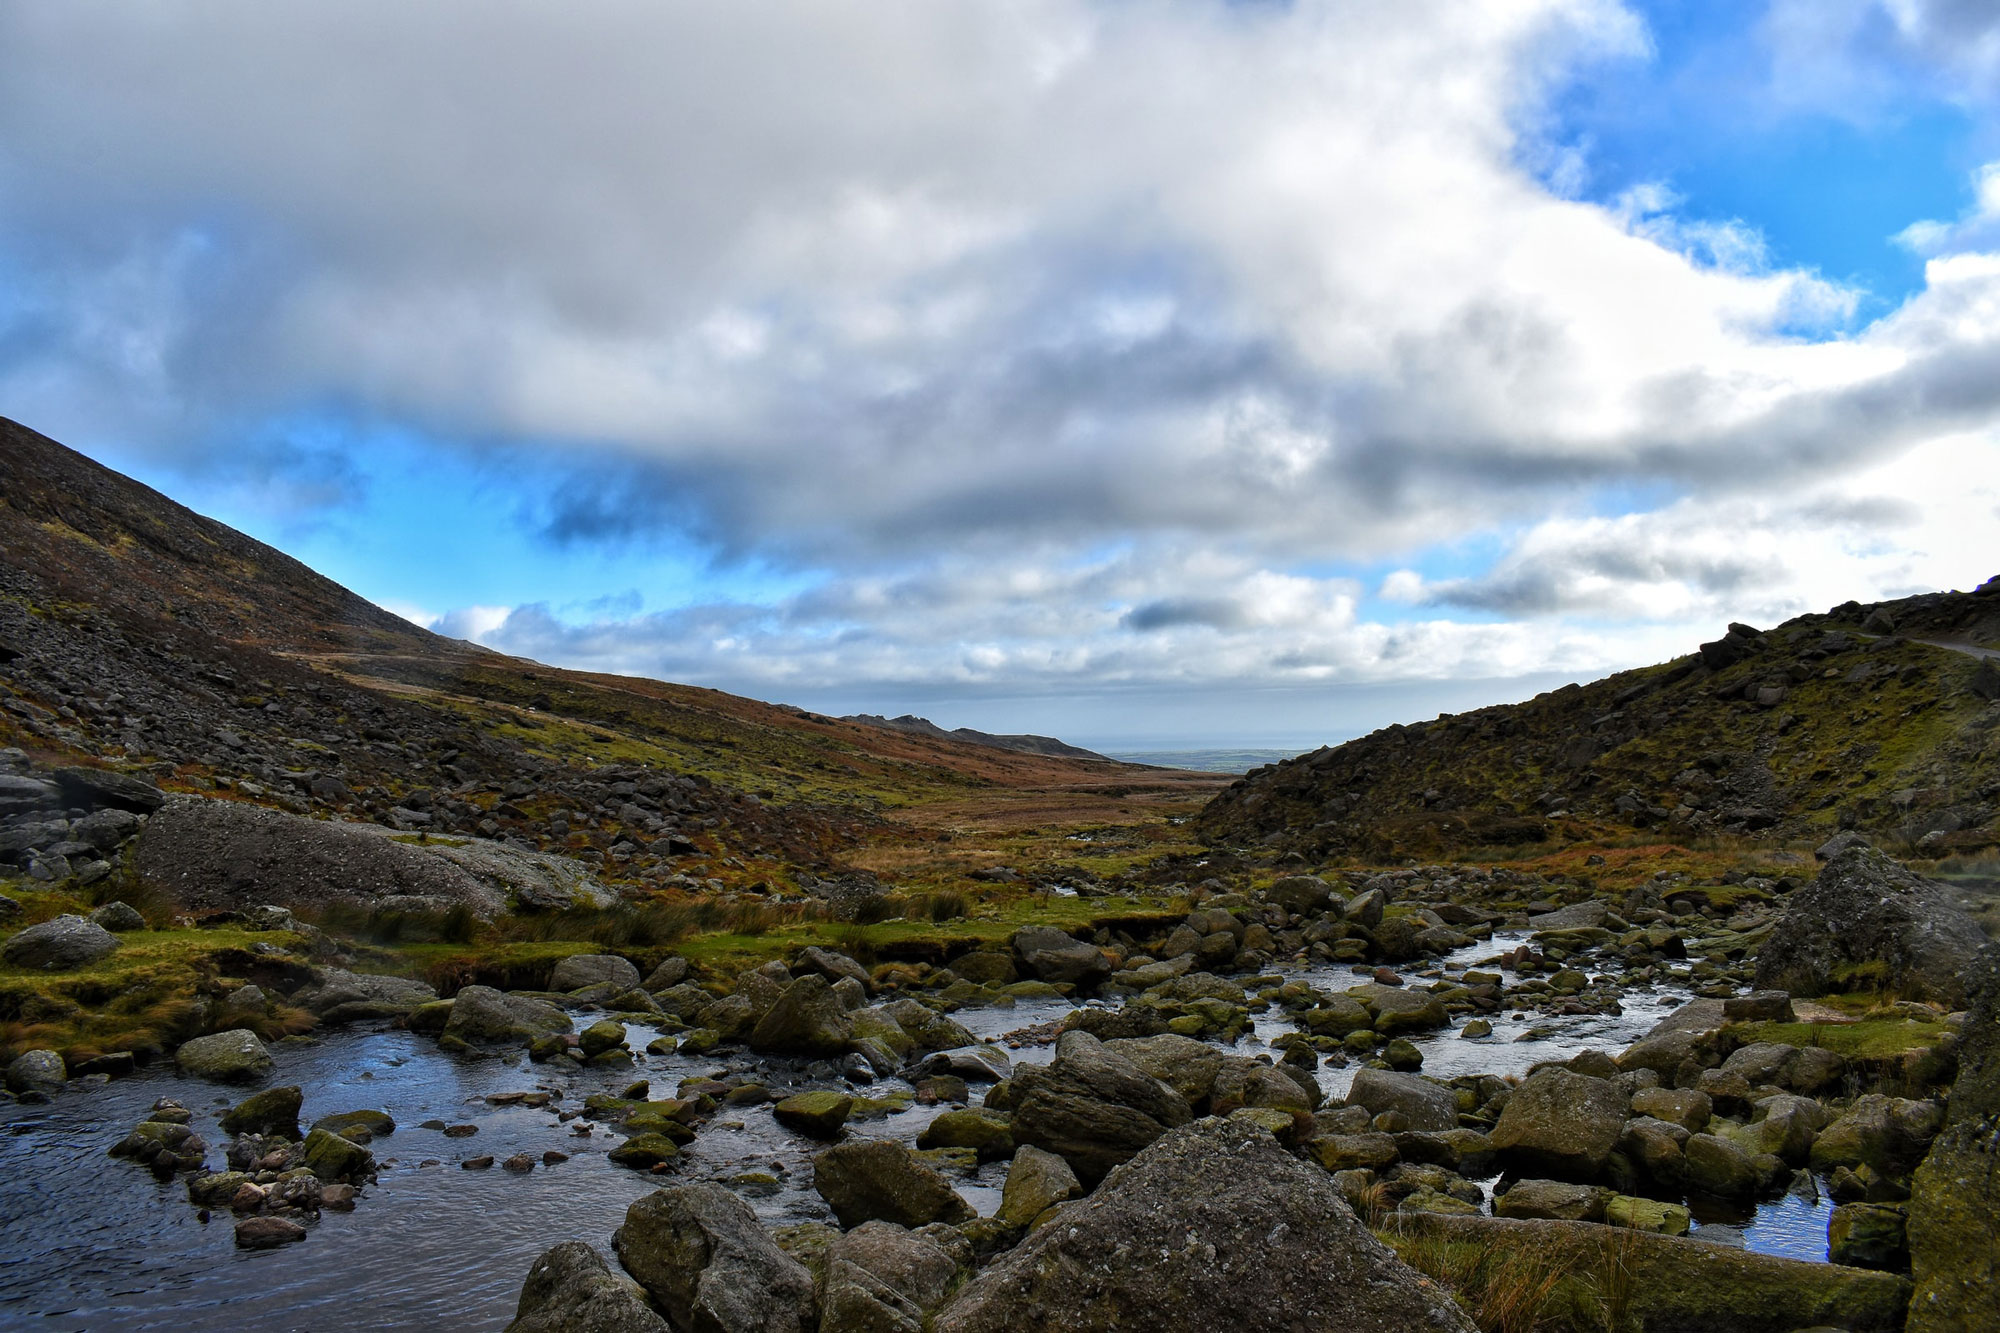 The River Mahon (an Mhachain) flows from the Comeragh Mountains in County Waterford, Ireland. Photo by Kayleigh Werner.